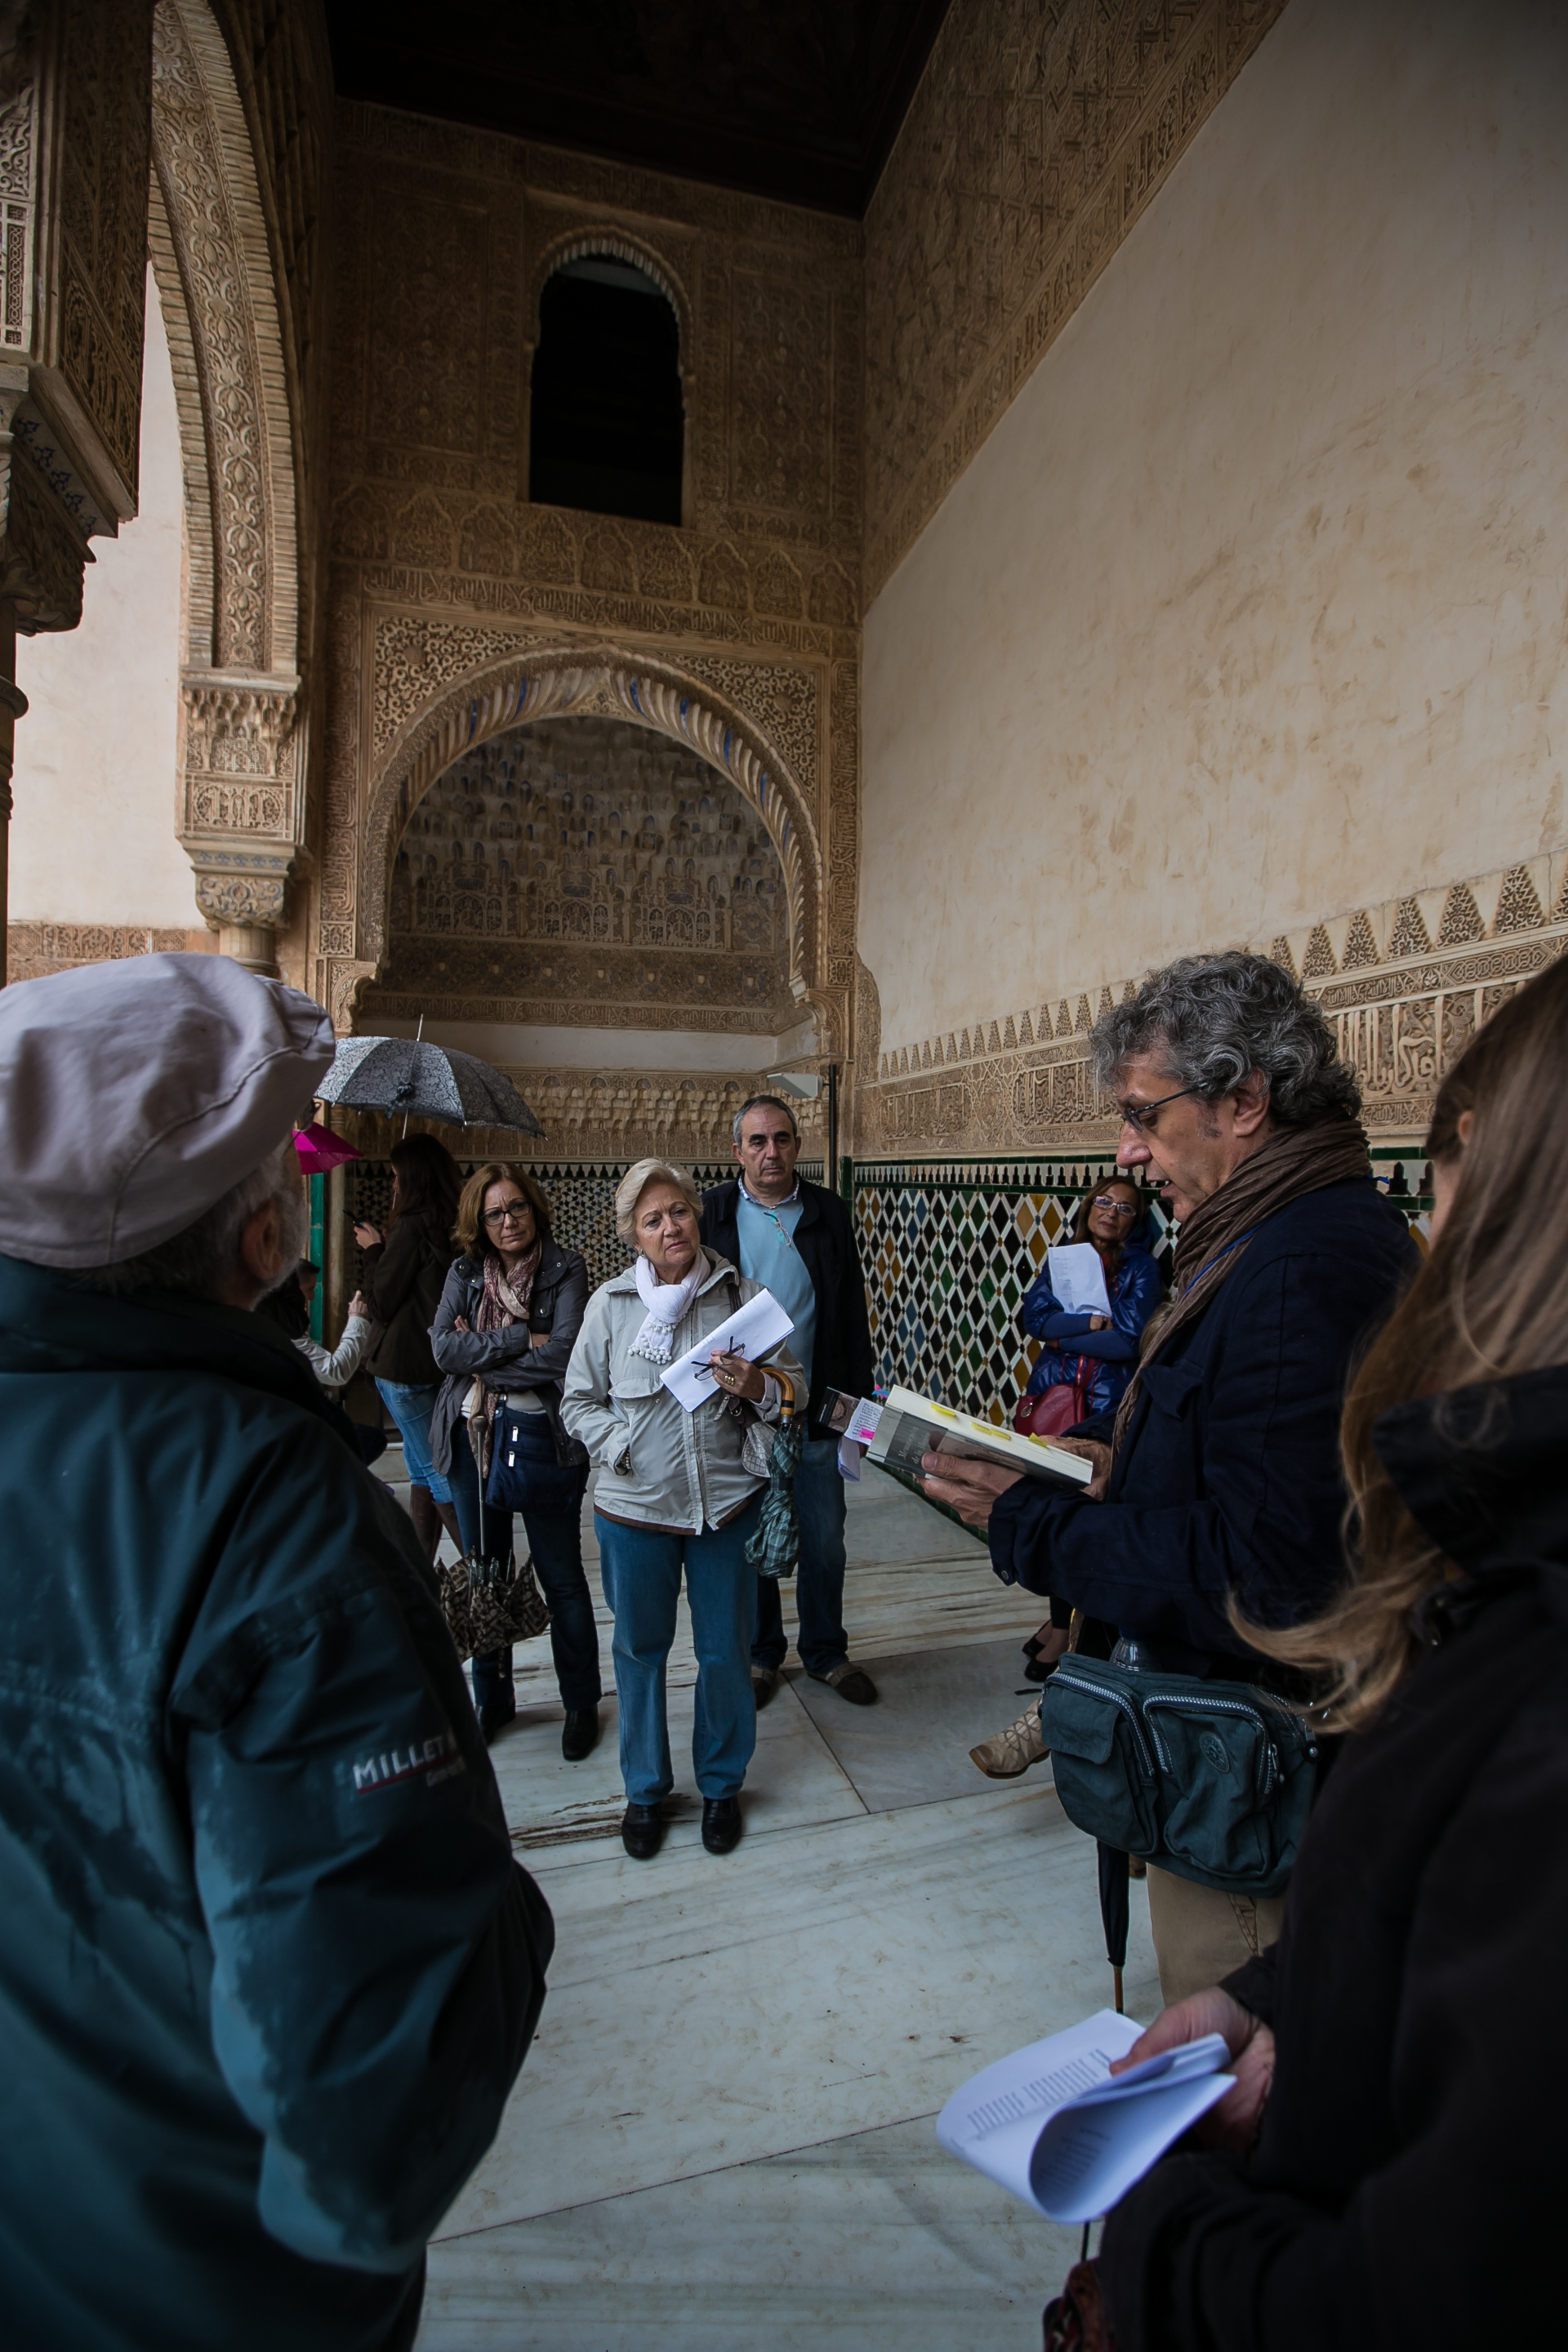 The Alhambra and Generalife seen through the eyes of specialists